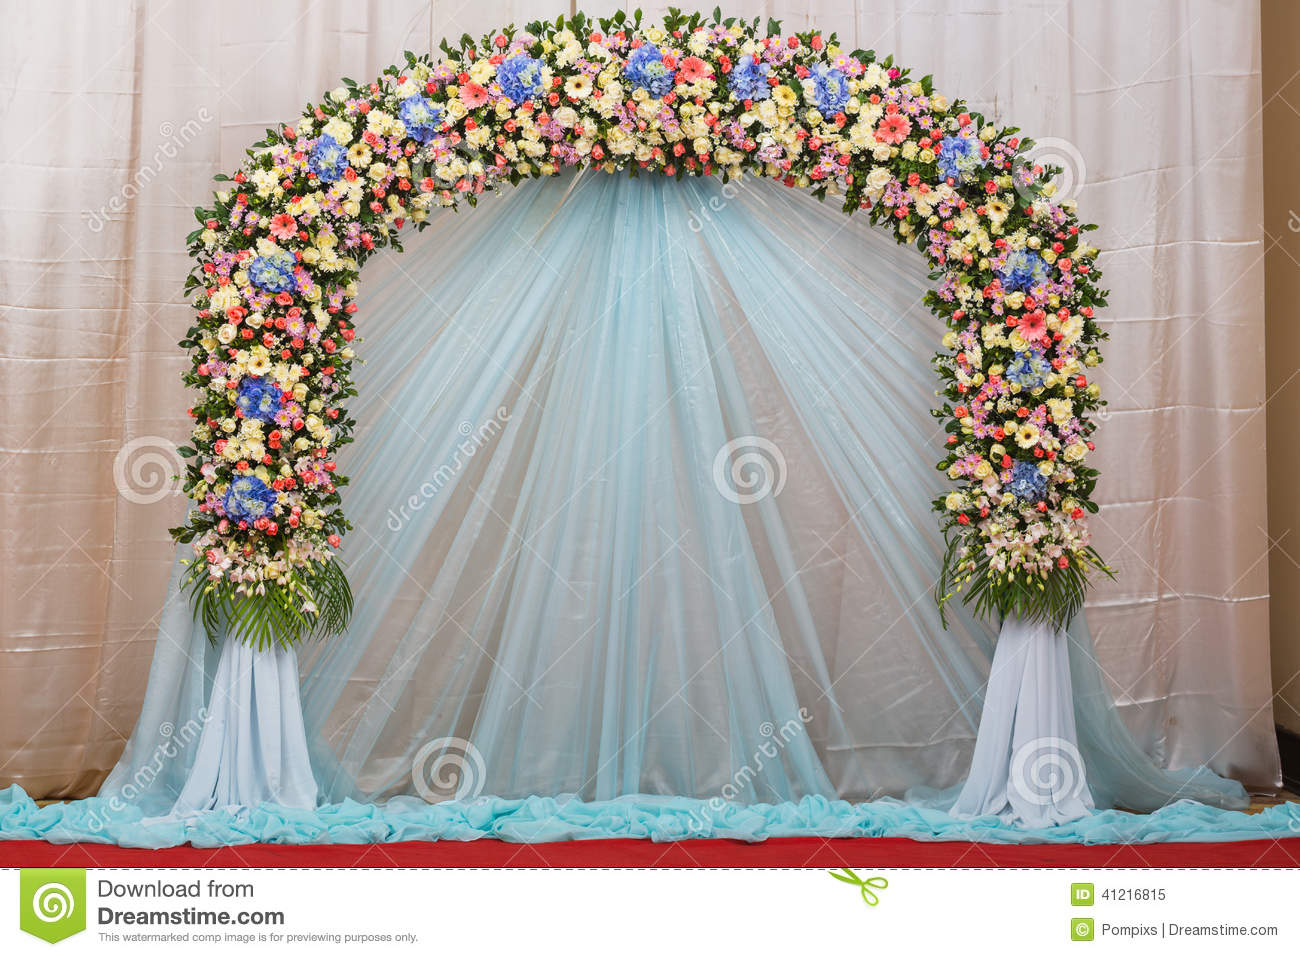 Background of beautiful flower wedding decorate stock for Background decoration